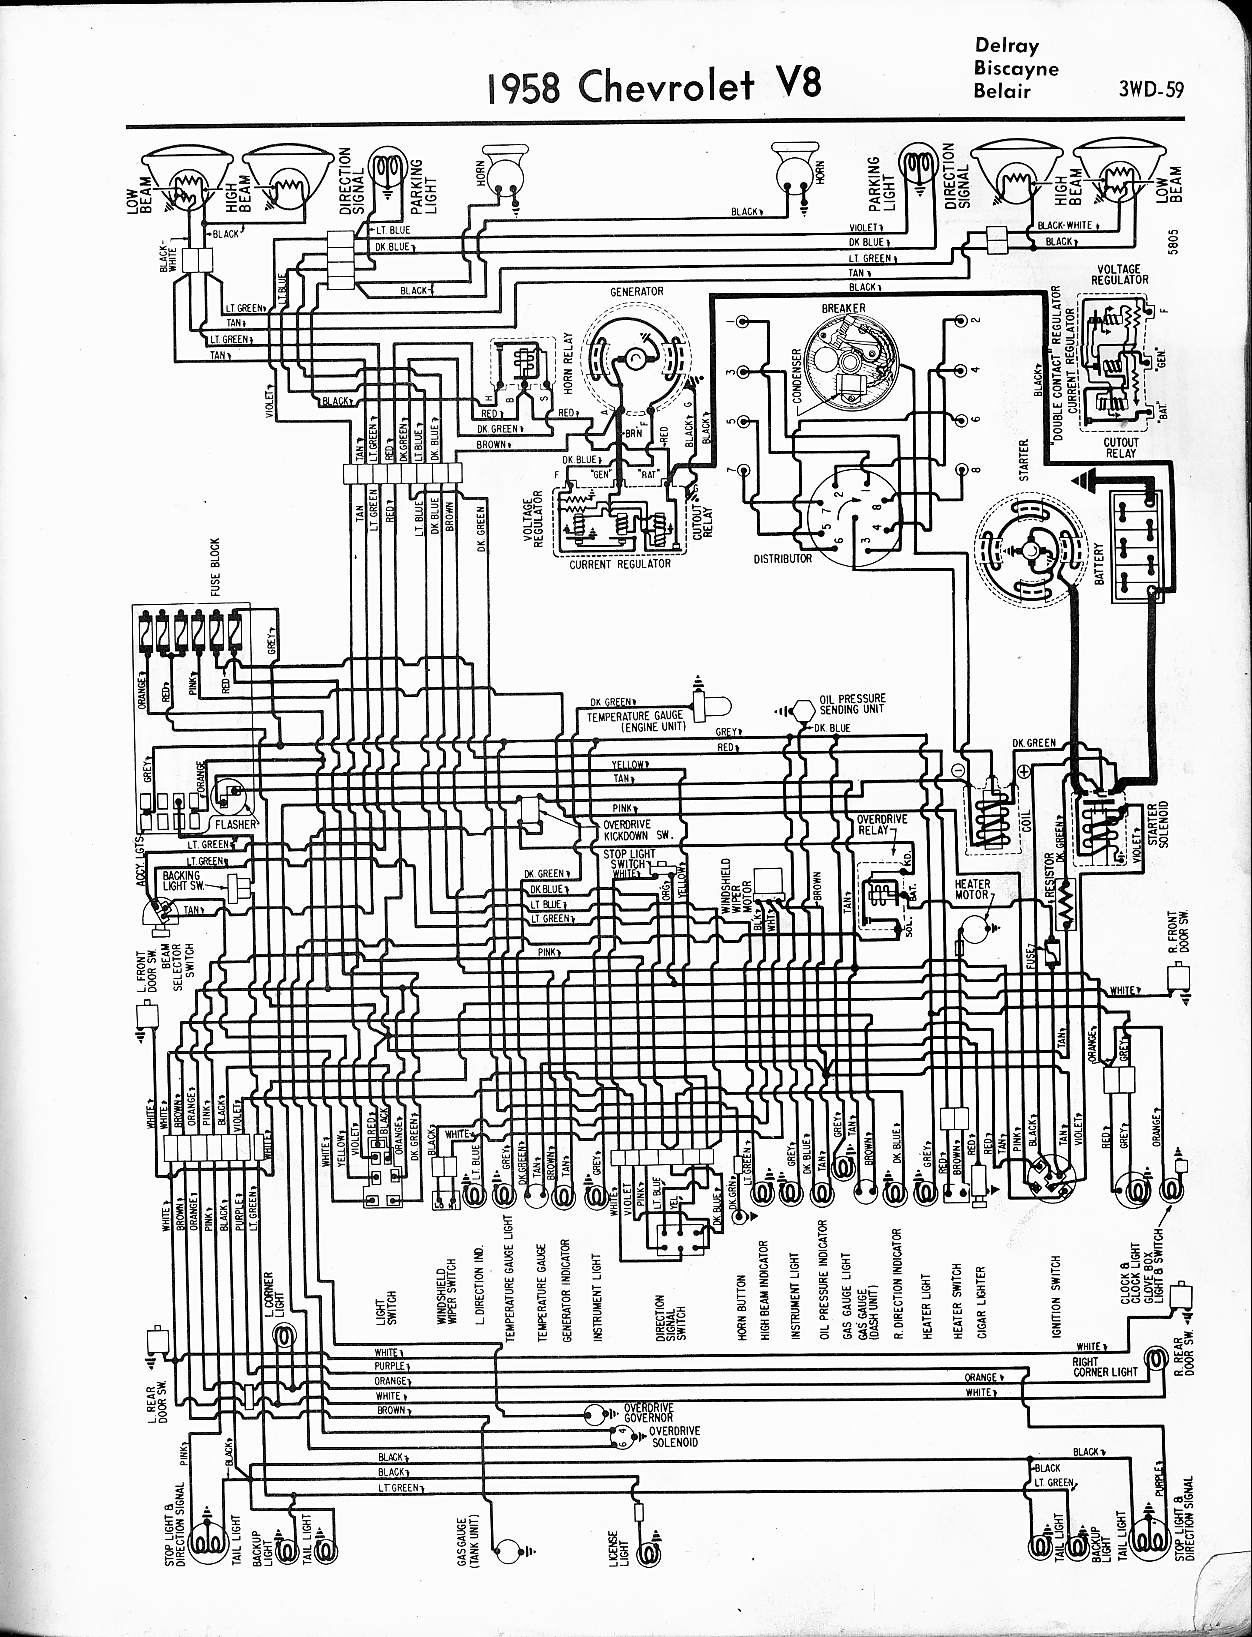 hight resolution of 57 65 chevy wiring diagrams 1959 impala wiring diagram 1958 v8 delray biscayne belair